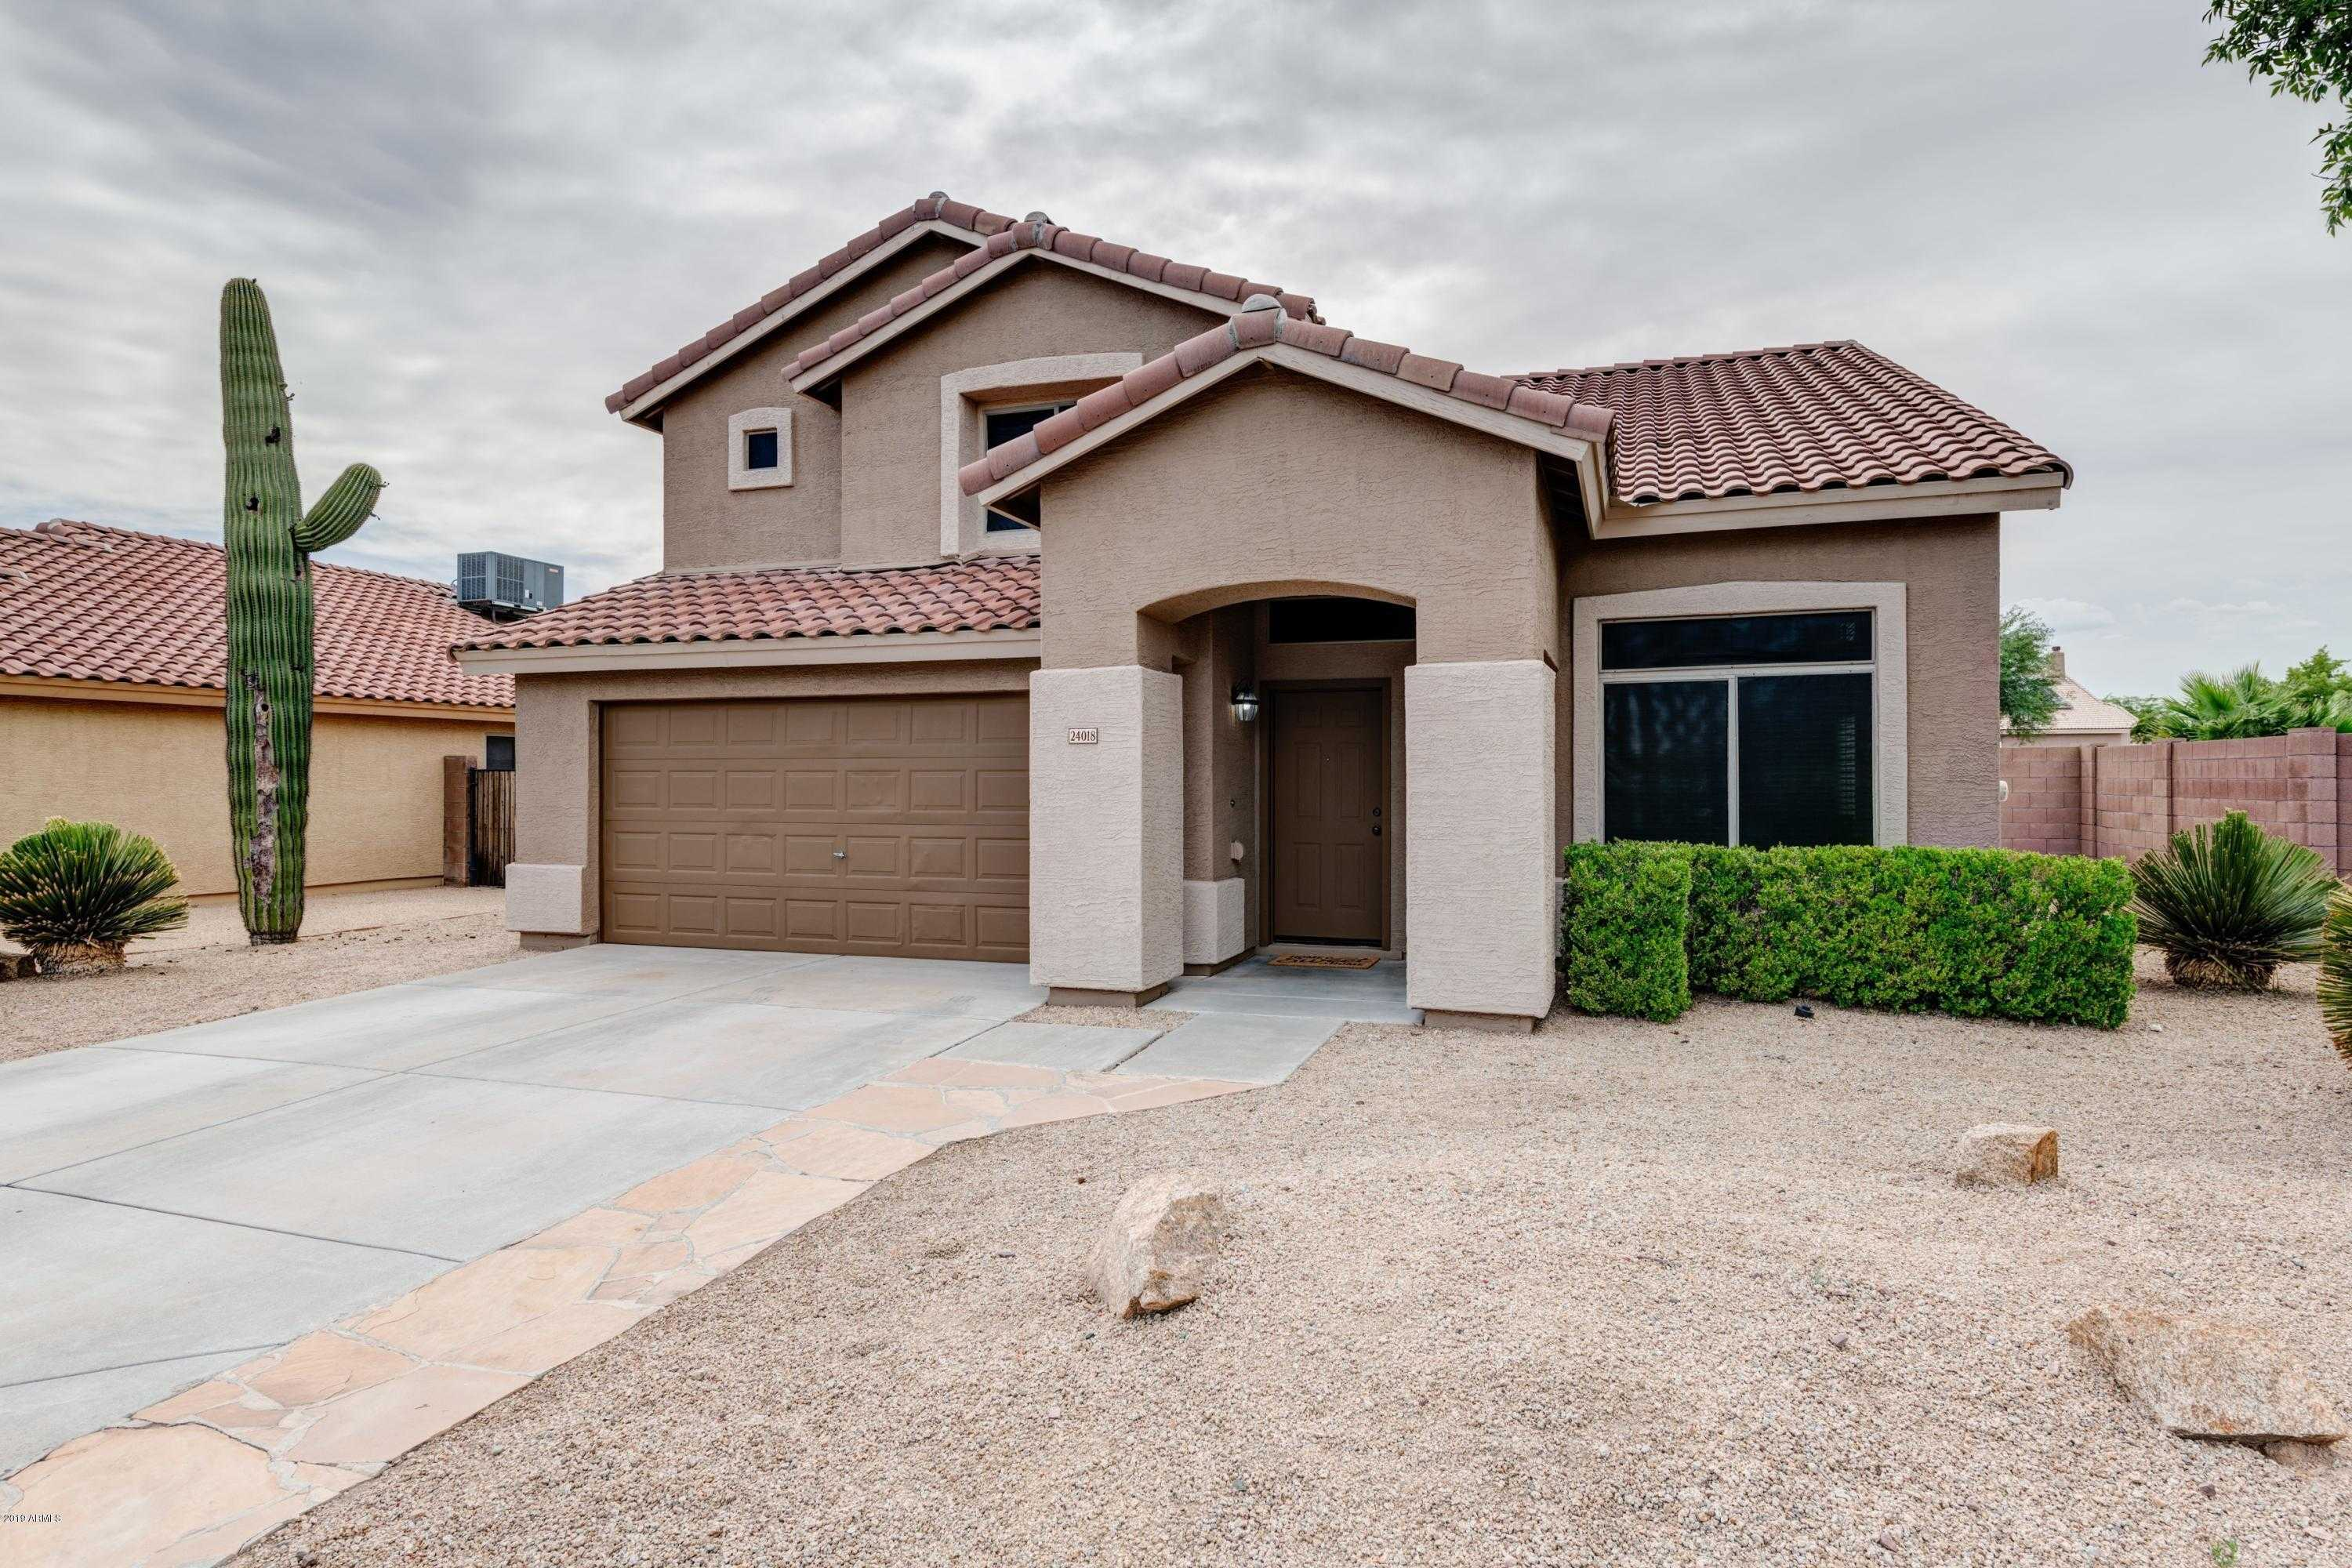 $304,499 - 3Br/3Ba - Home for Sale in Parcel 3b At North Canyon Ranch, Glendale